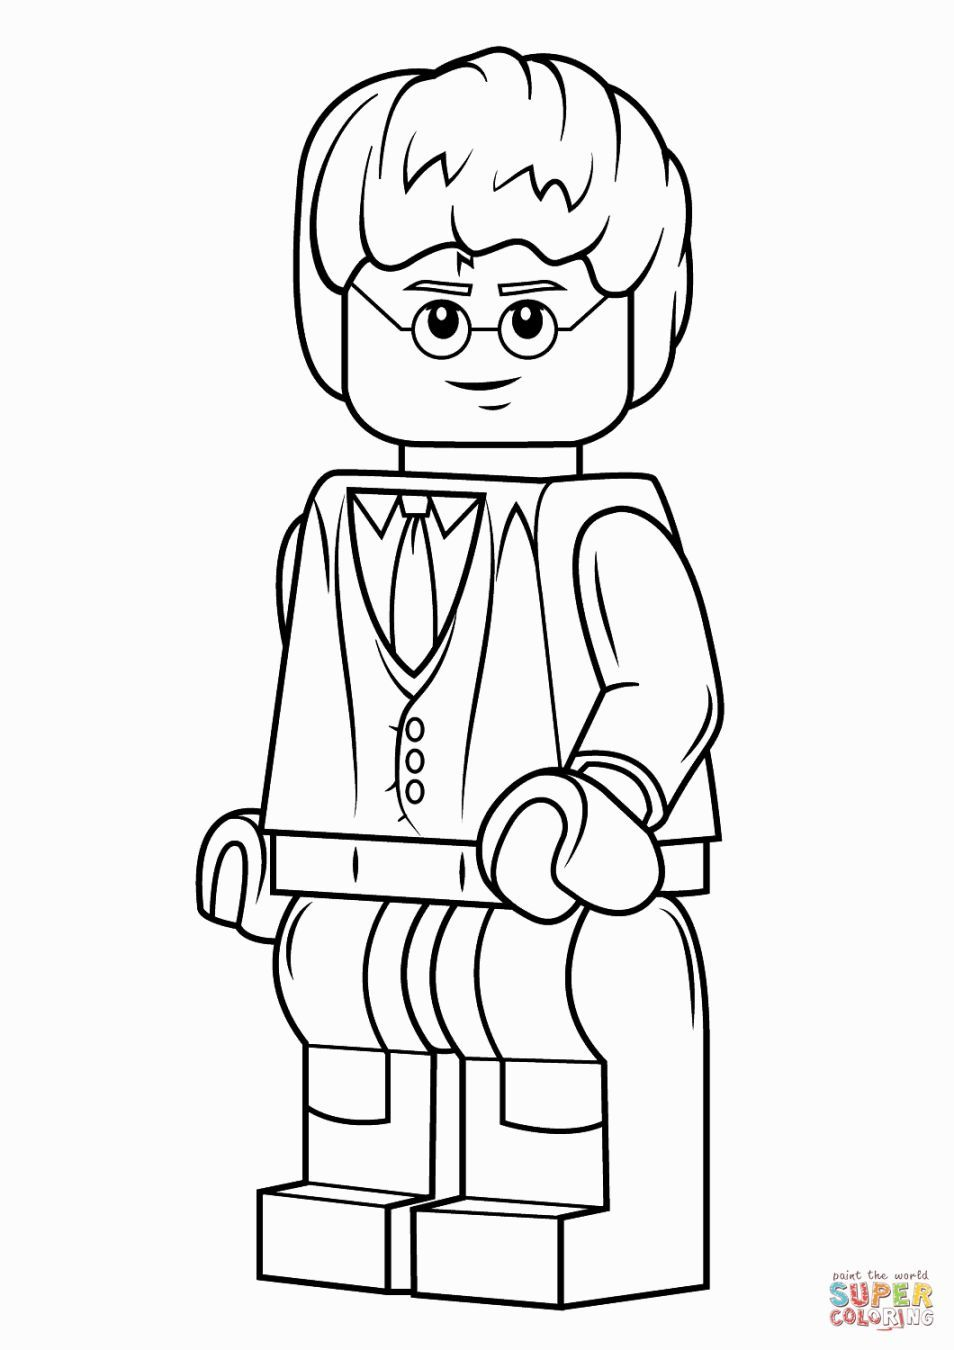 Lego Harry Potter Coloring Pages Harry Potter Coloring Pages Harry Potter Colors Harry Potter Coloring Book